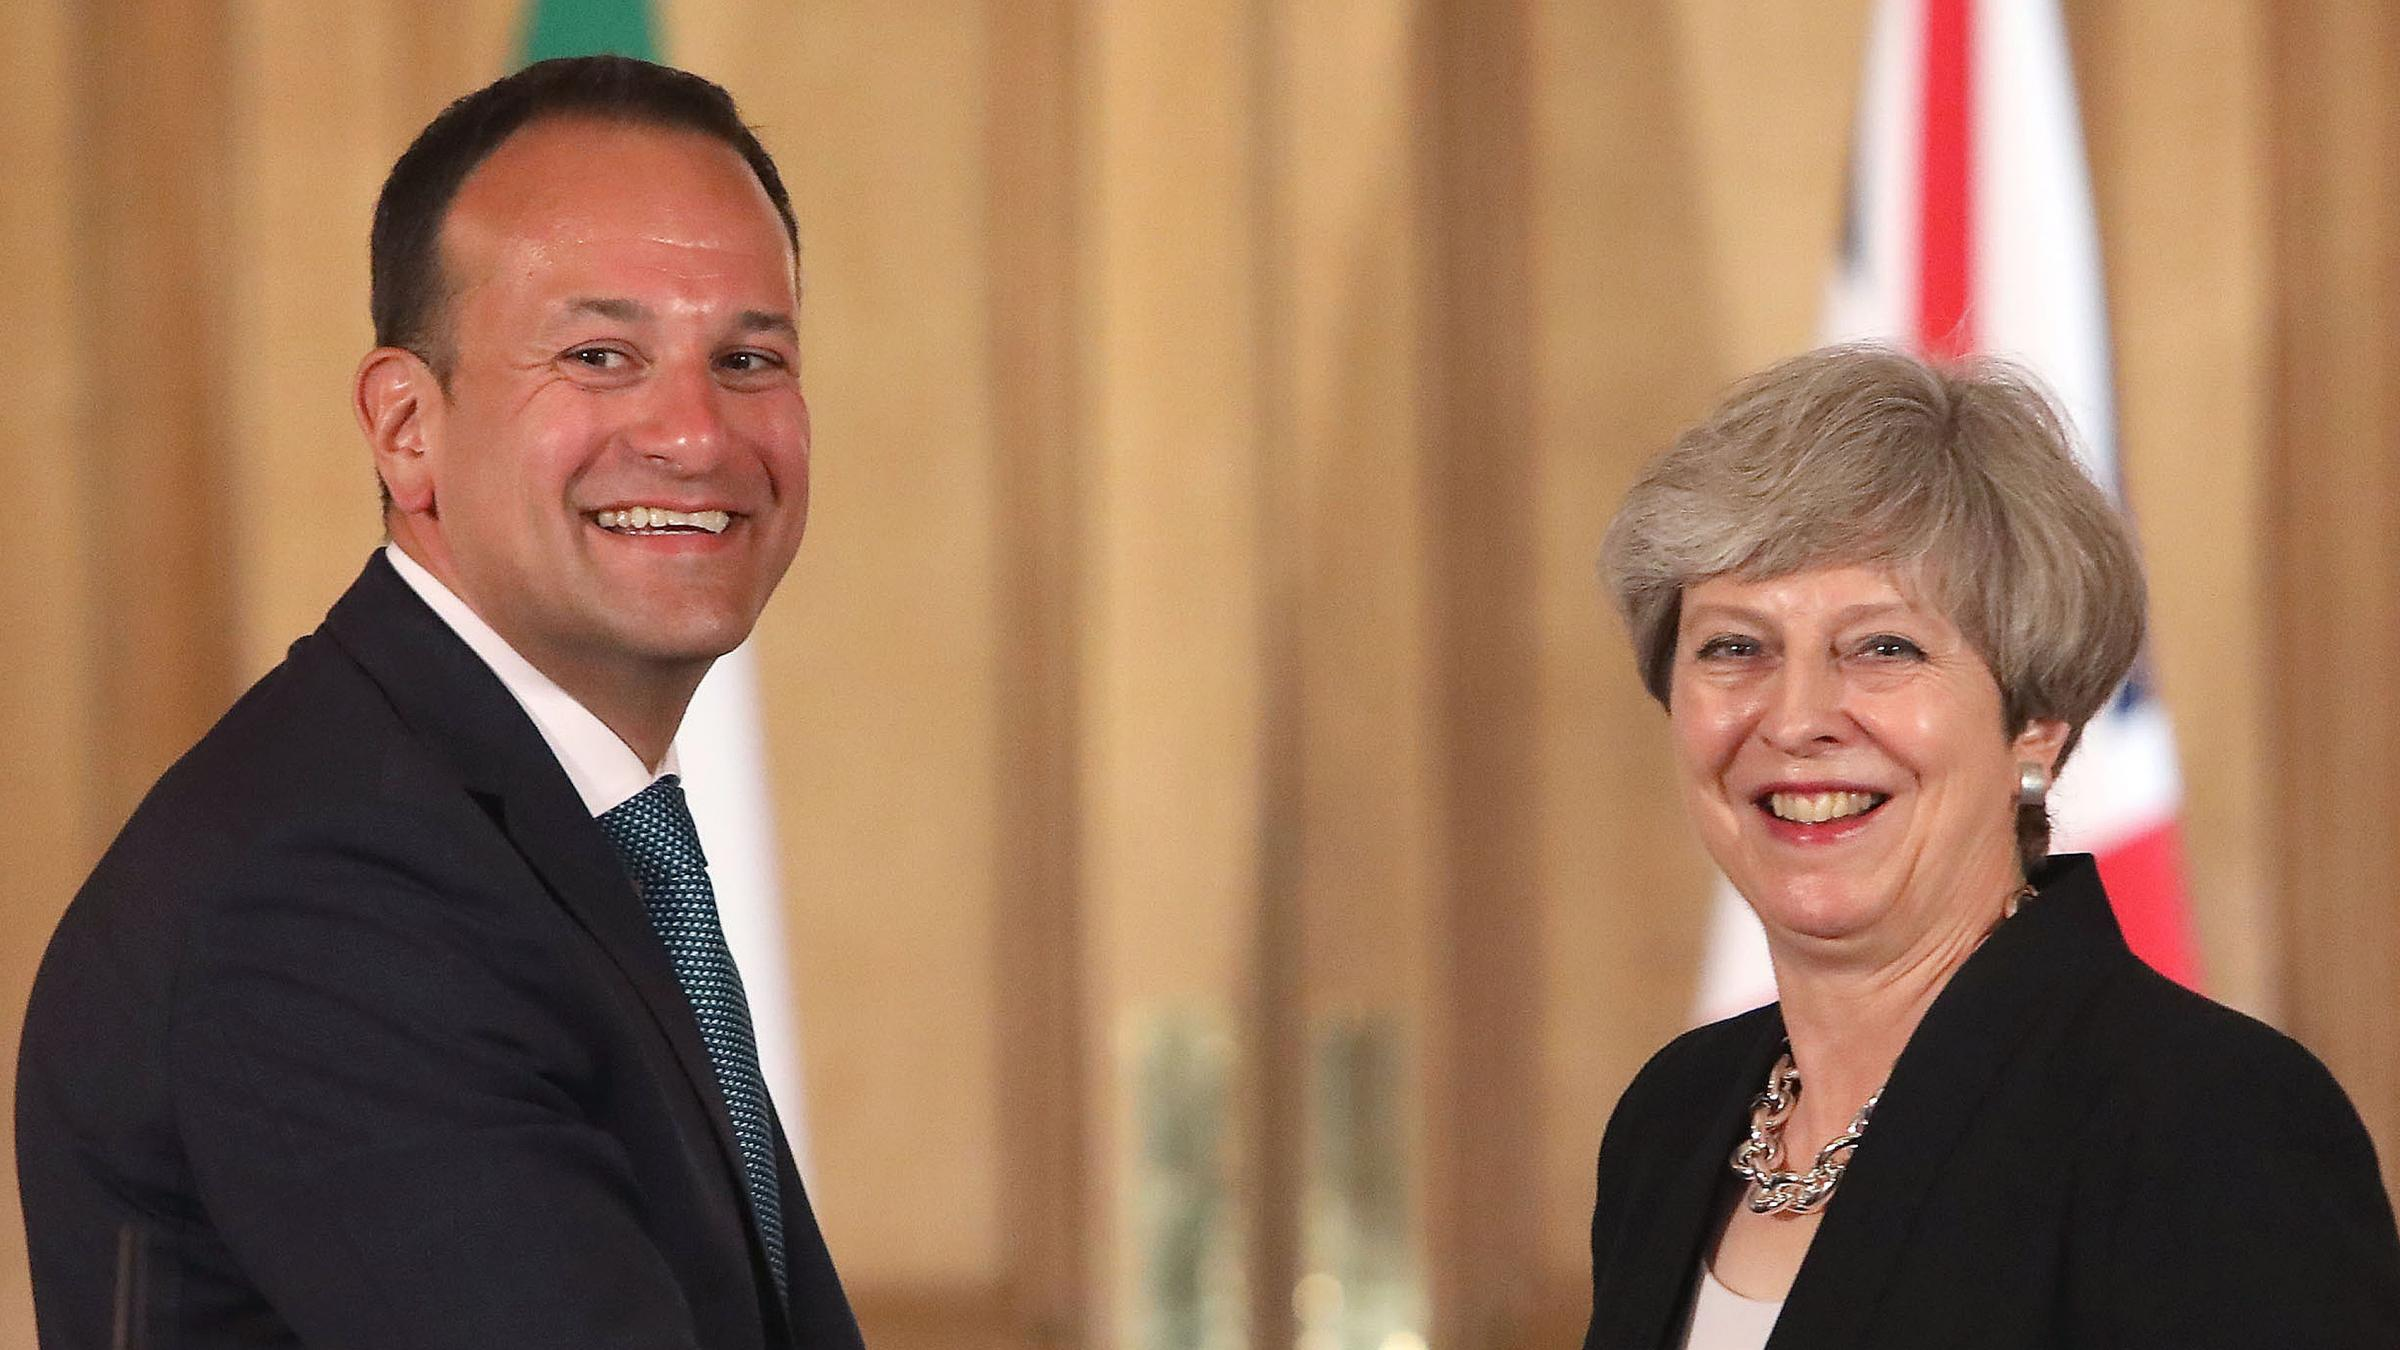 DUP talks not going as 'expected' and deal 'not imminent'